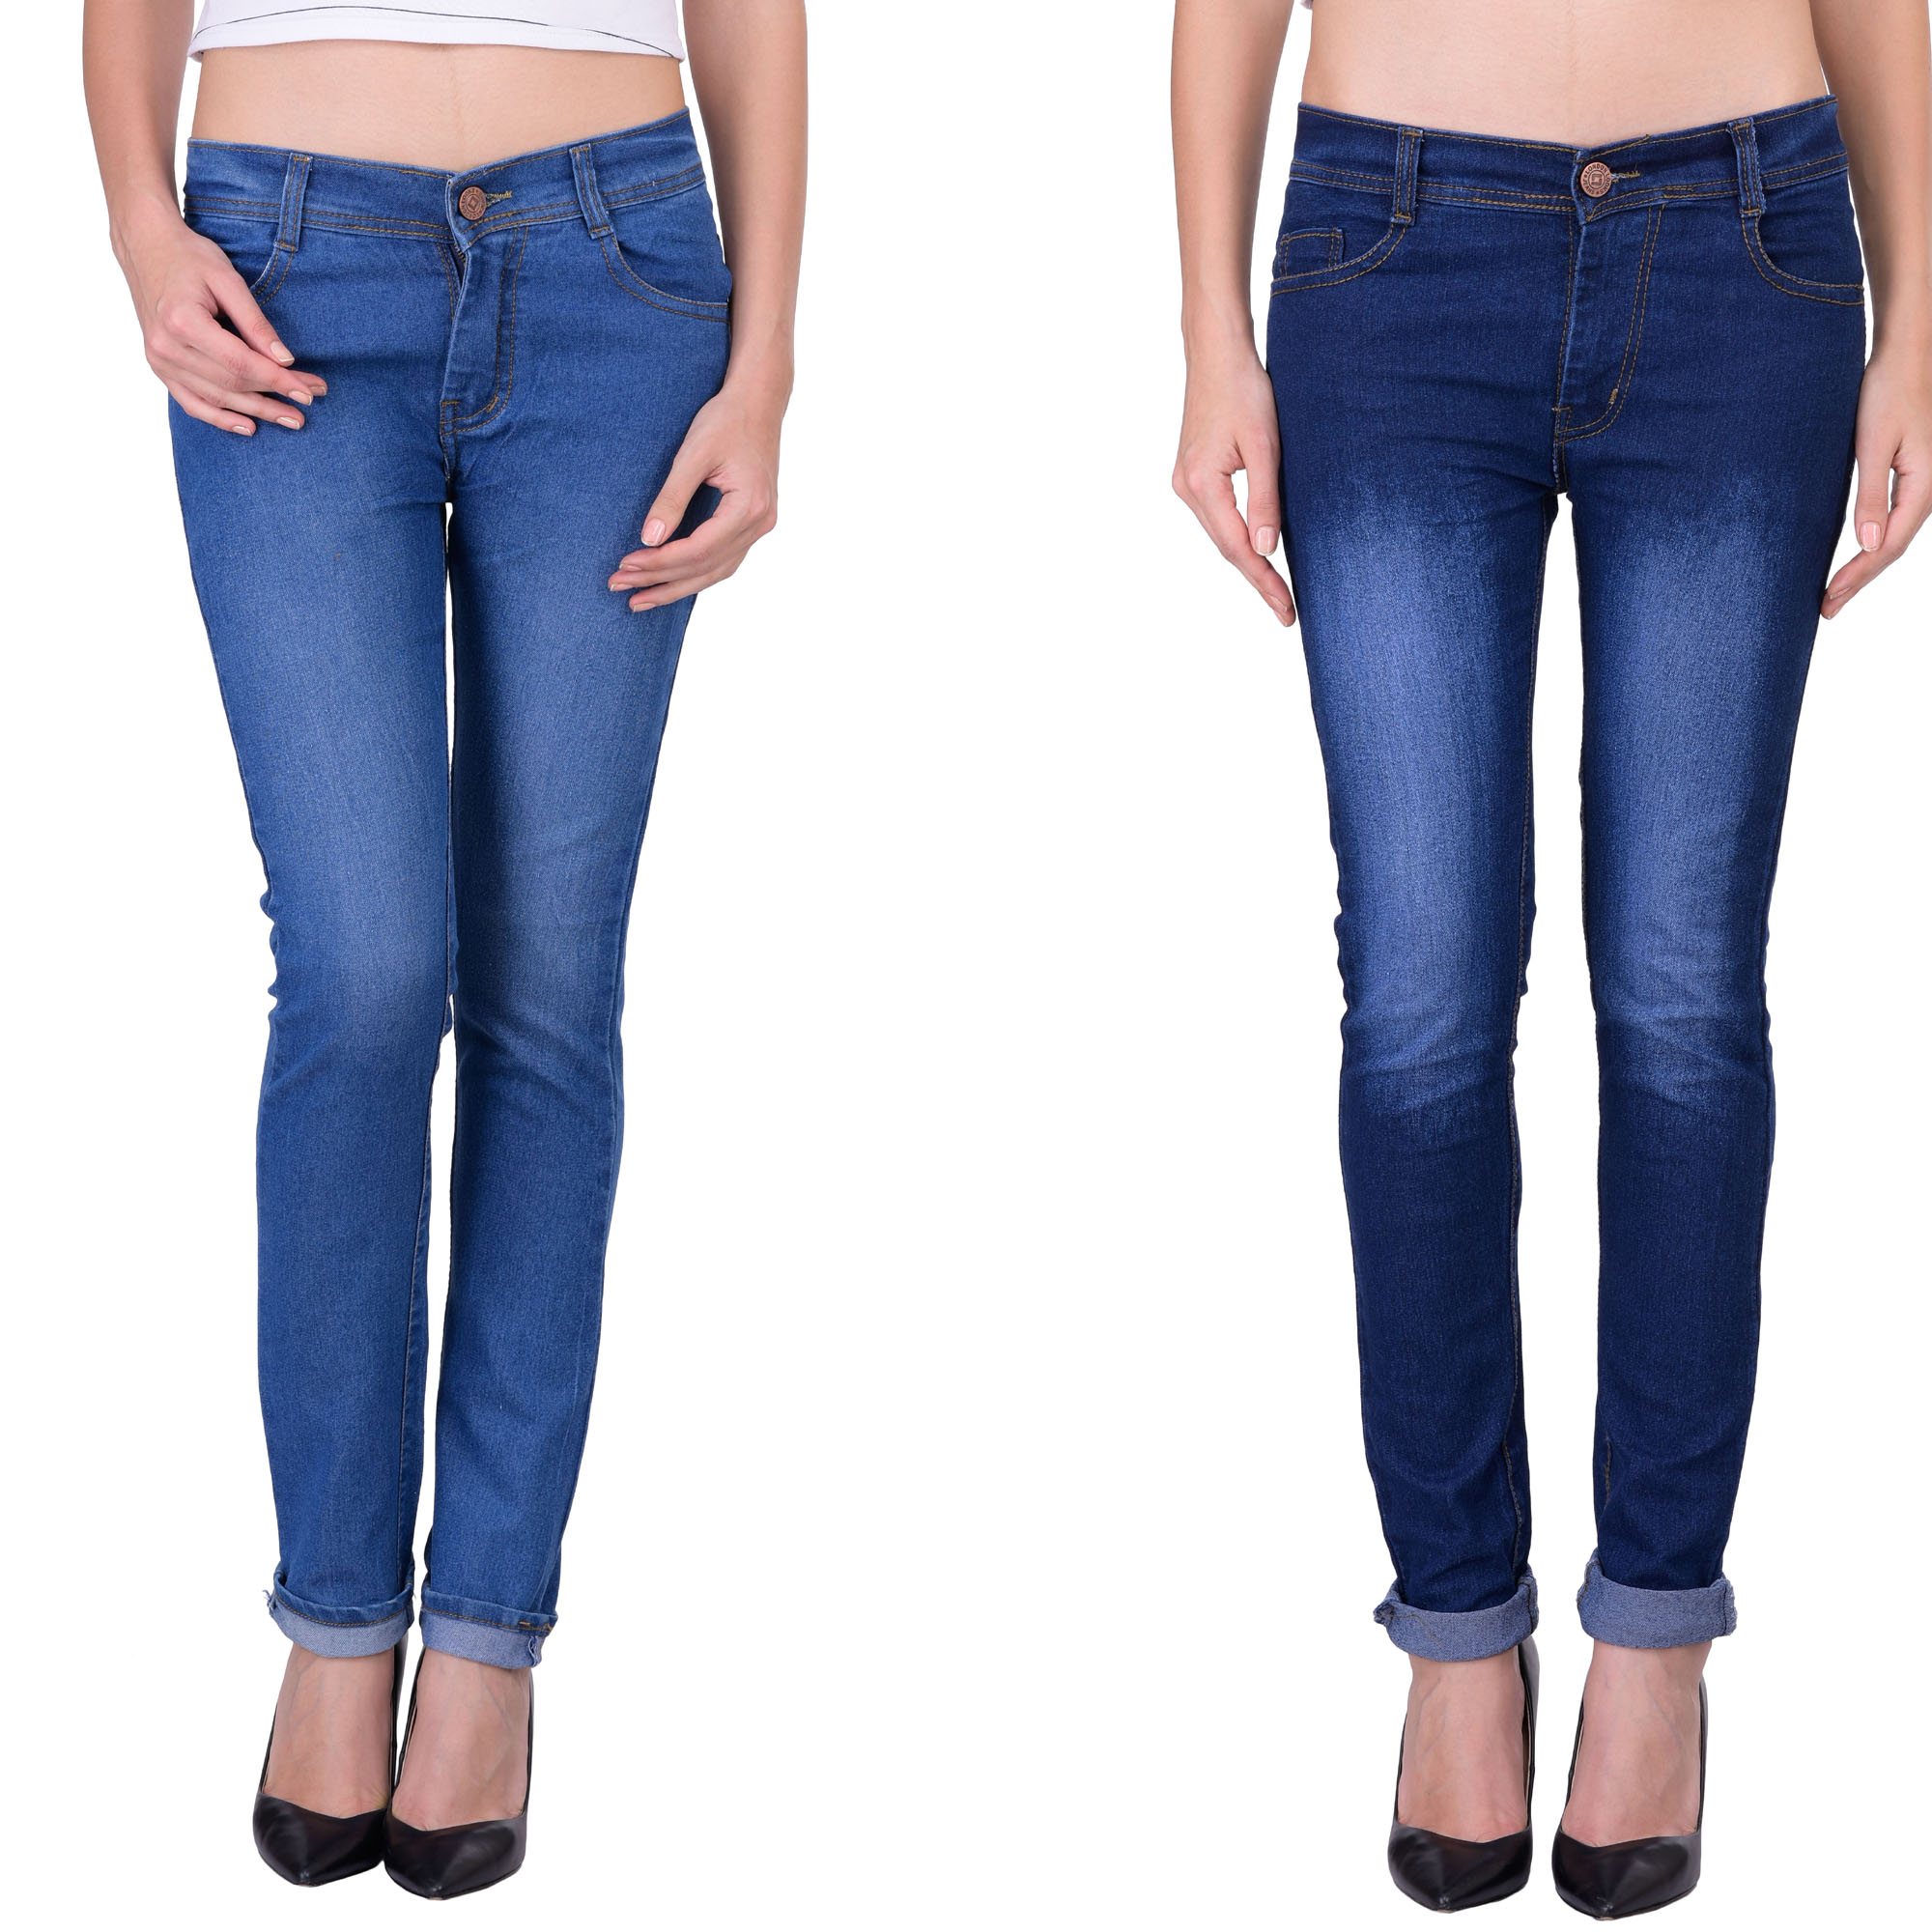 Balino London Dark Blue, Light Blue Jeans For Women